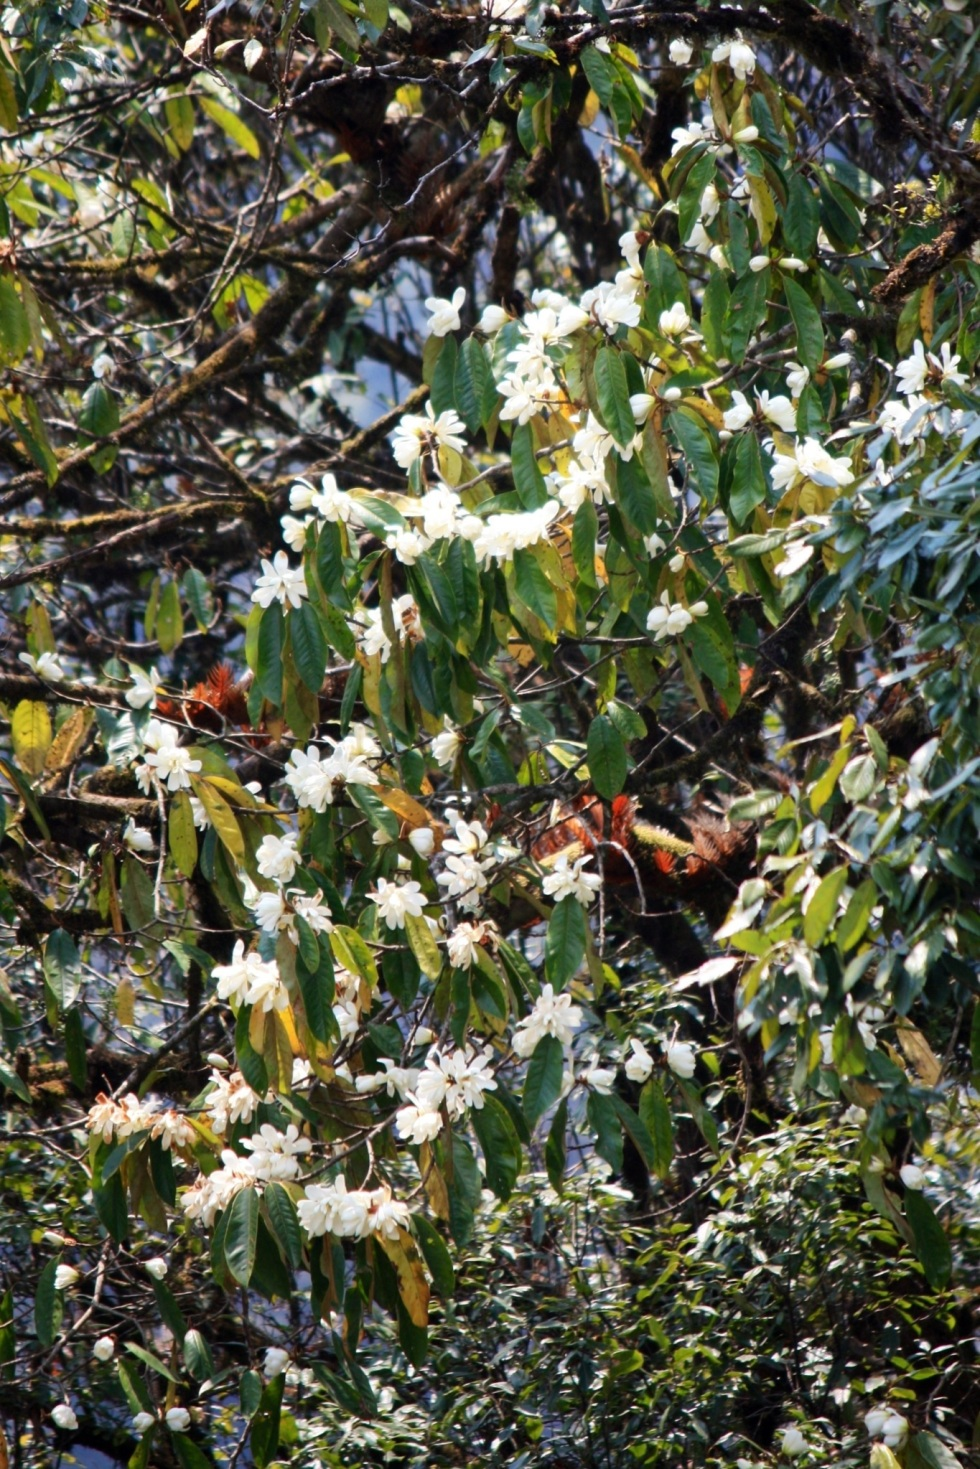 Michelia doltsopa, near Trongsa, Bhutan, April 2013